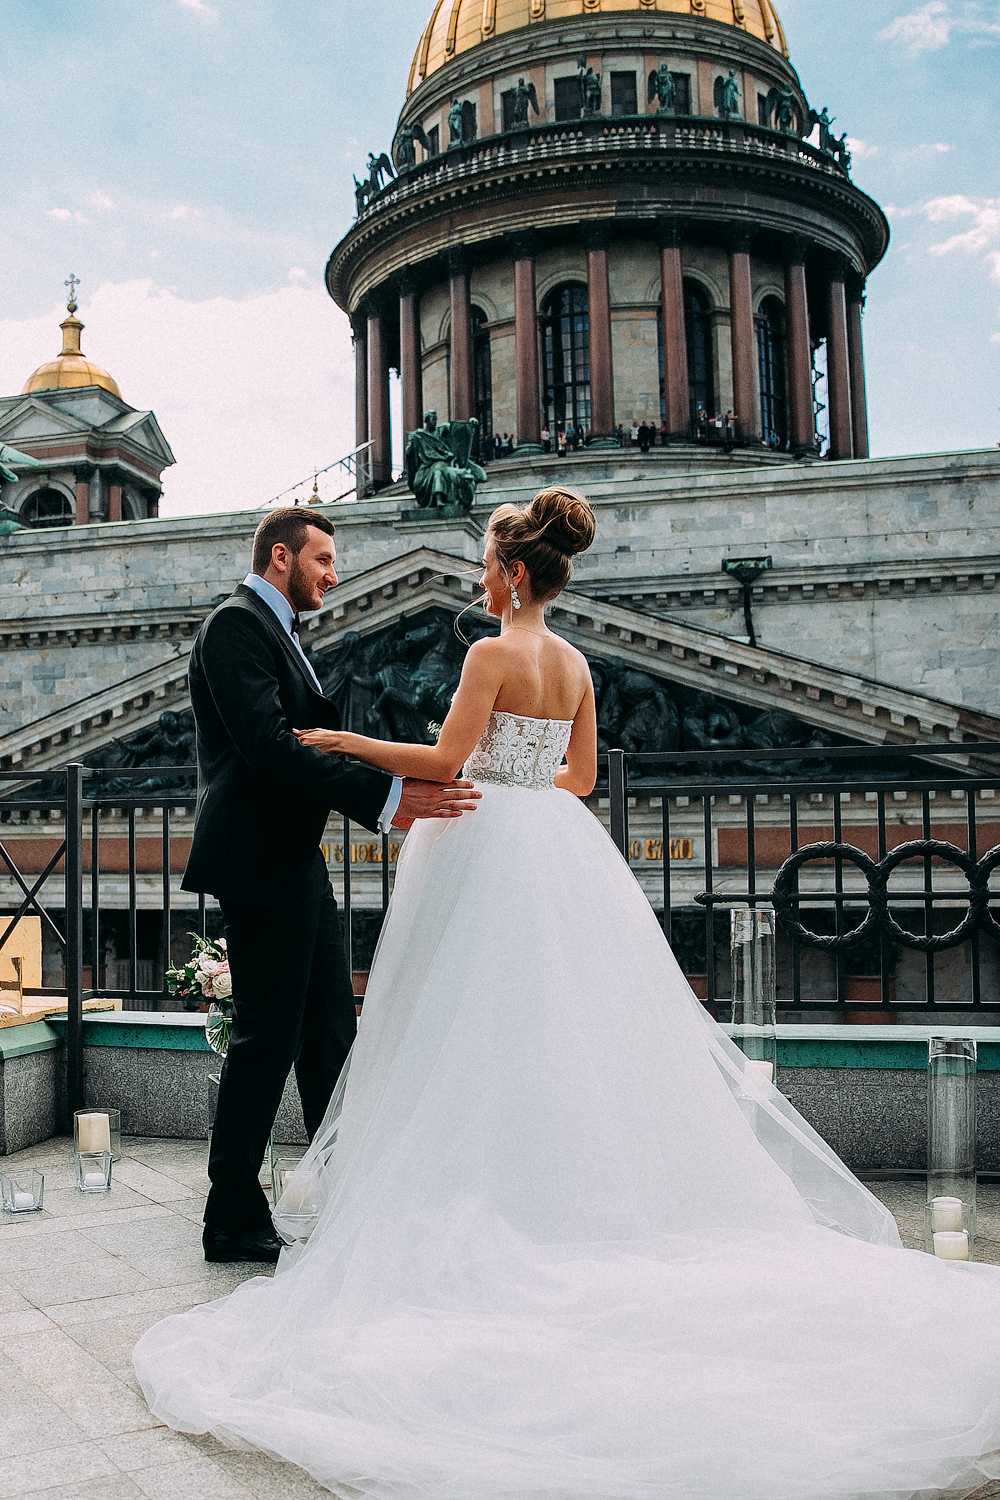 Gorgeous european wedding - Vsevolod & Alina